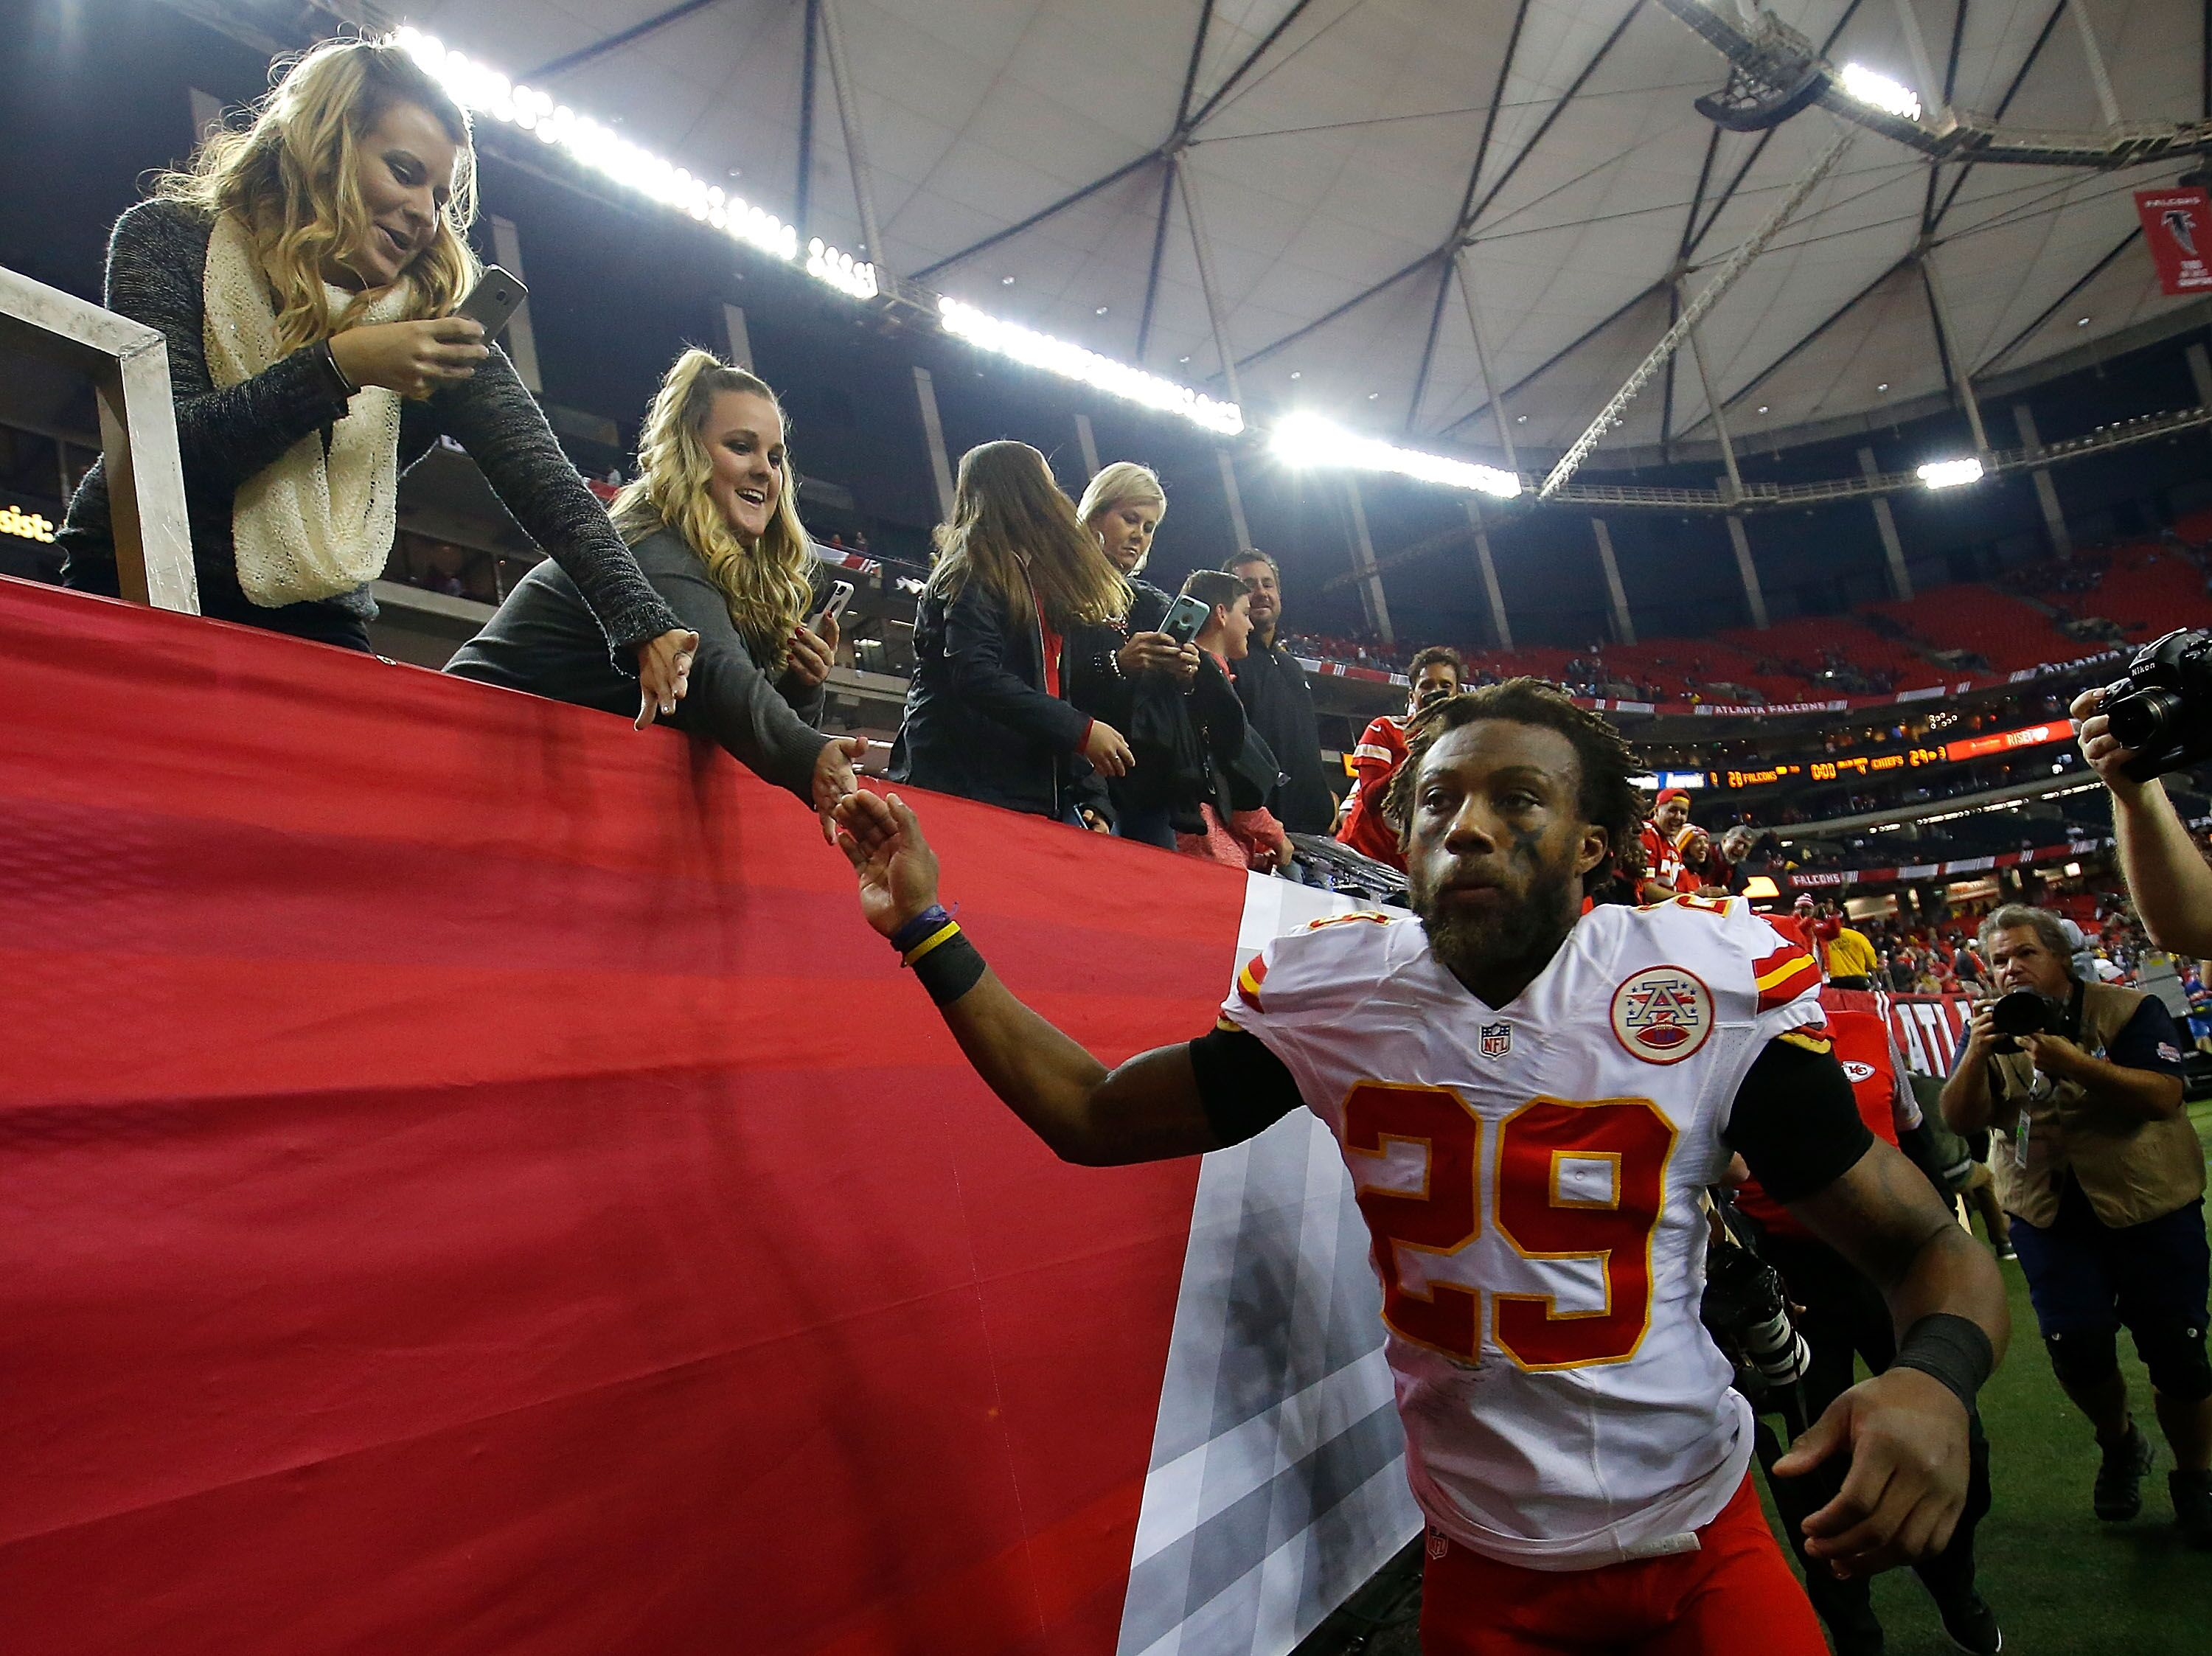 Chiefs safety Eric Berry carted off with Achilles injury against